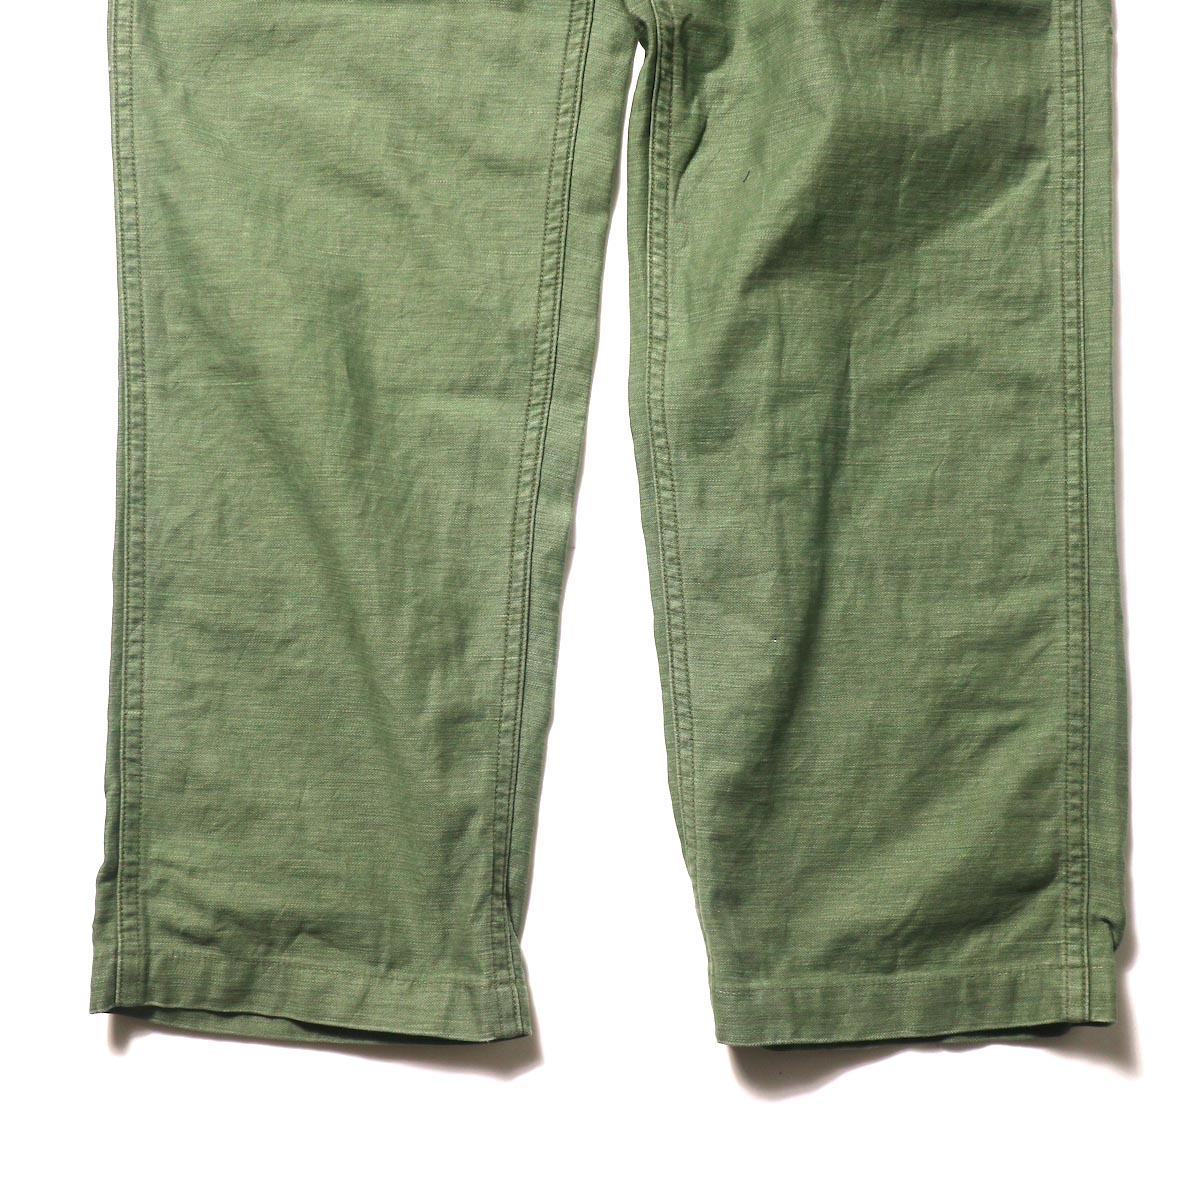 orSlow / US ARMY FATIGUE PANTS (Used Green)裾